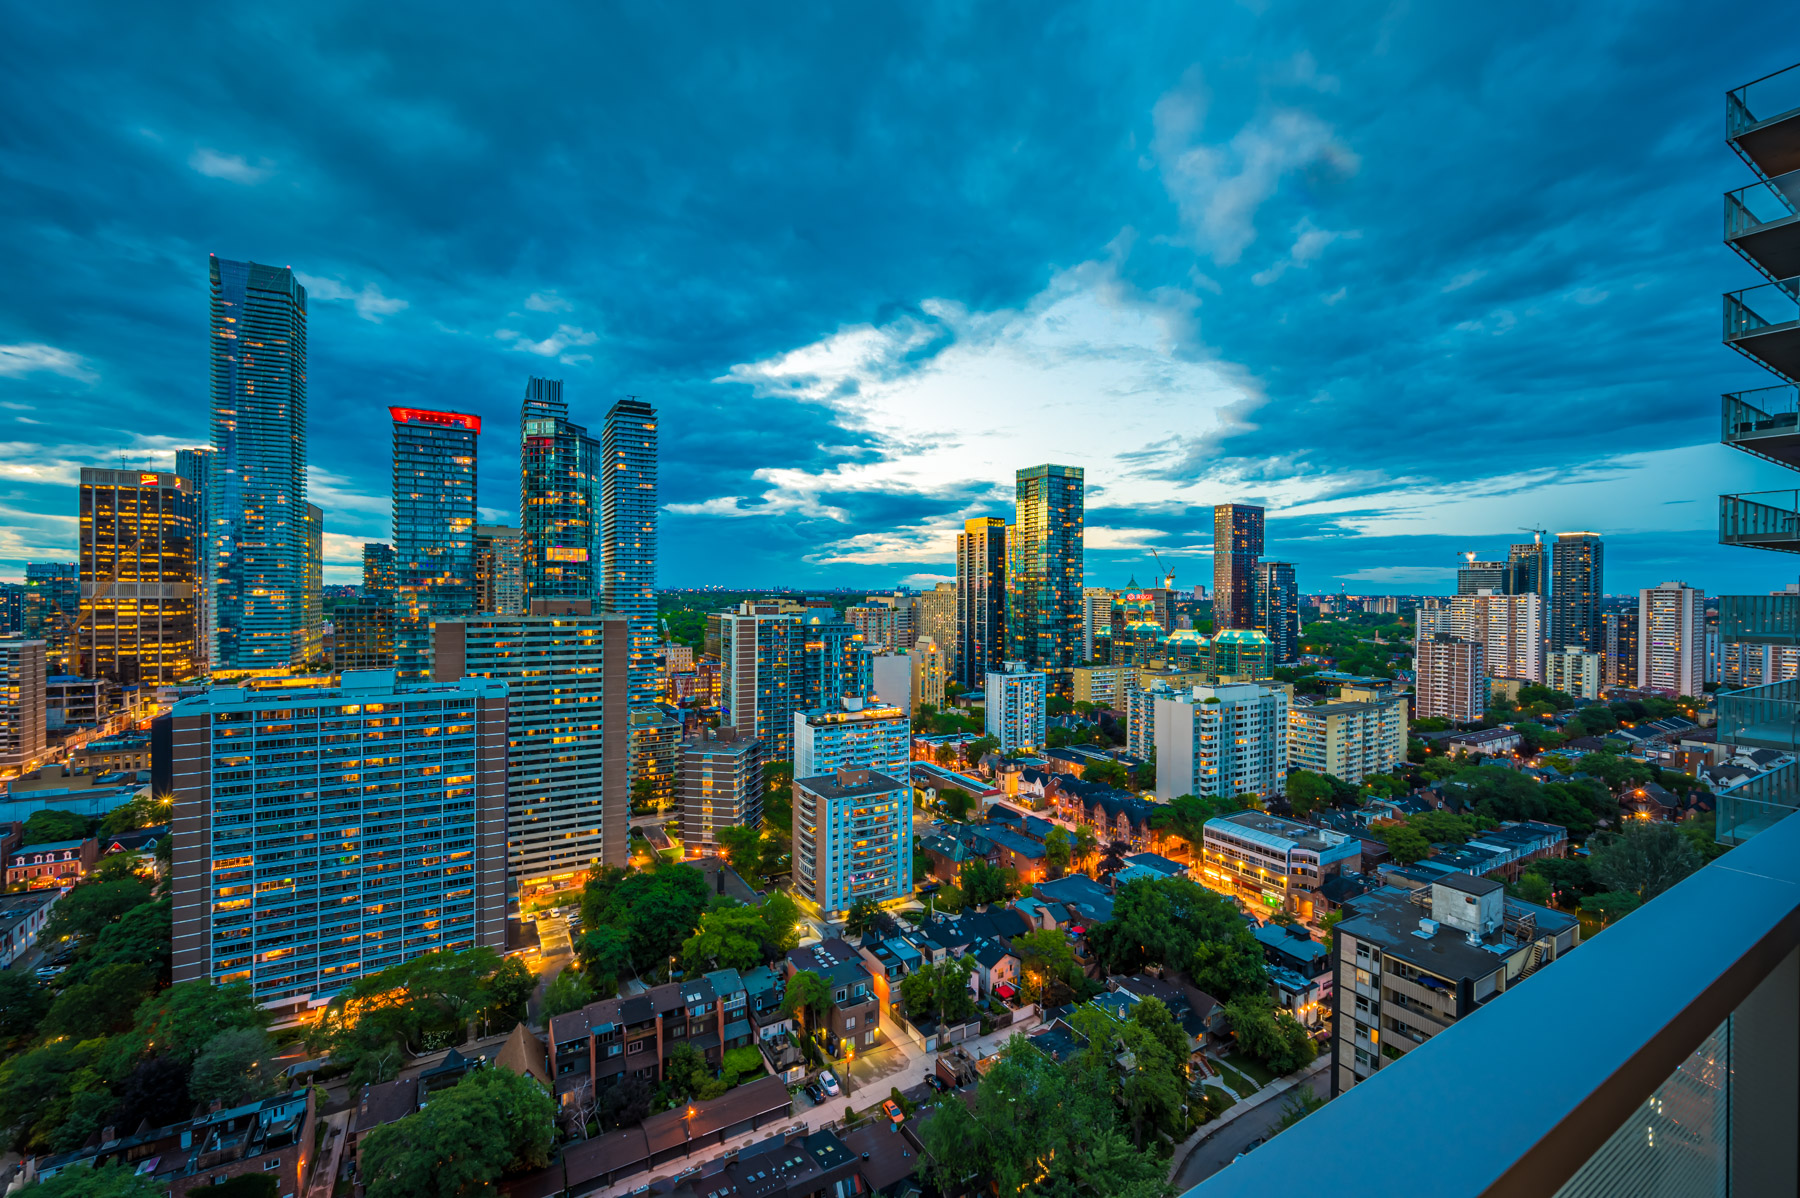 View of Toronto skyline at night from 28 Wellesley St Unit 3009 balcony.